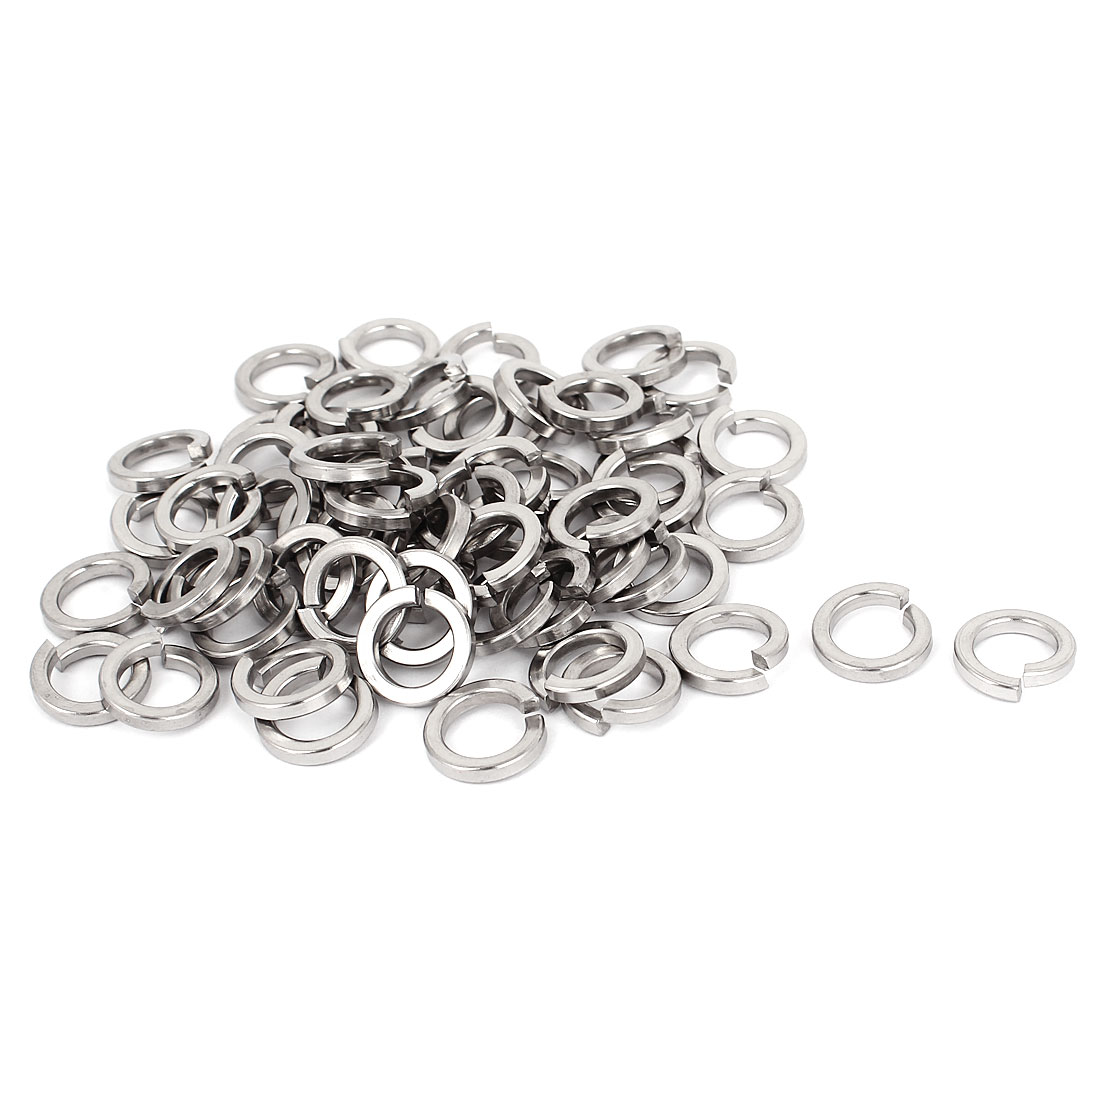 "100pcs 304 Stainless Steel Split Lock Spring Washers 3/8"" Screw Spacer Pad"